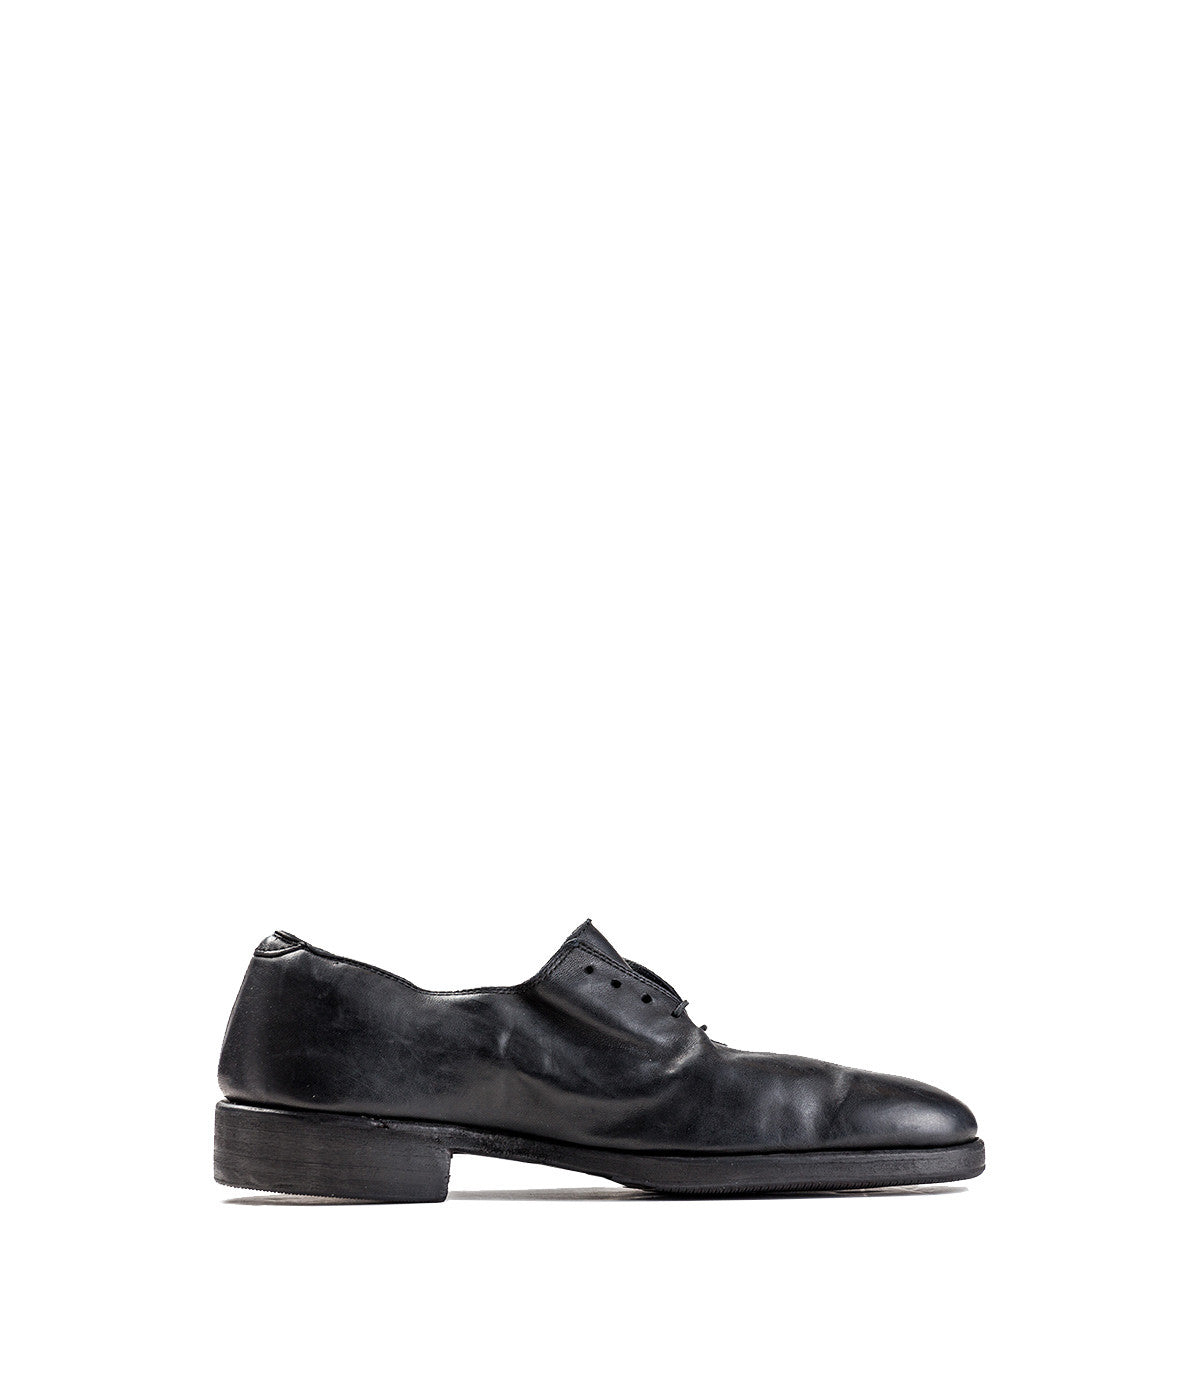 Black Almond Toe Oxford Shoe